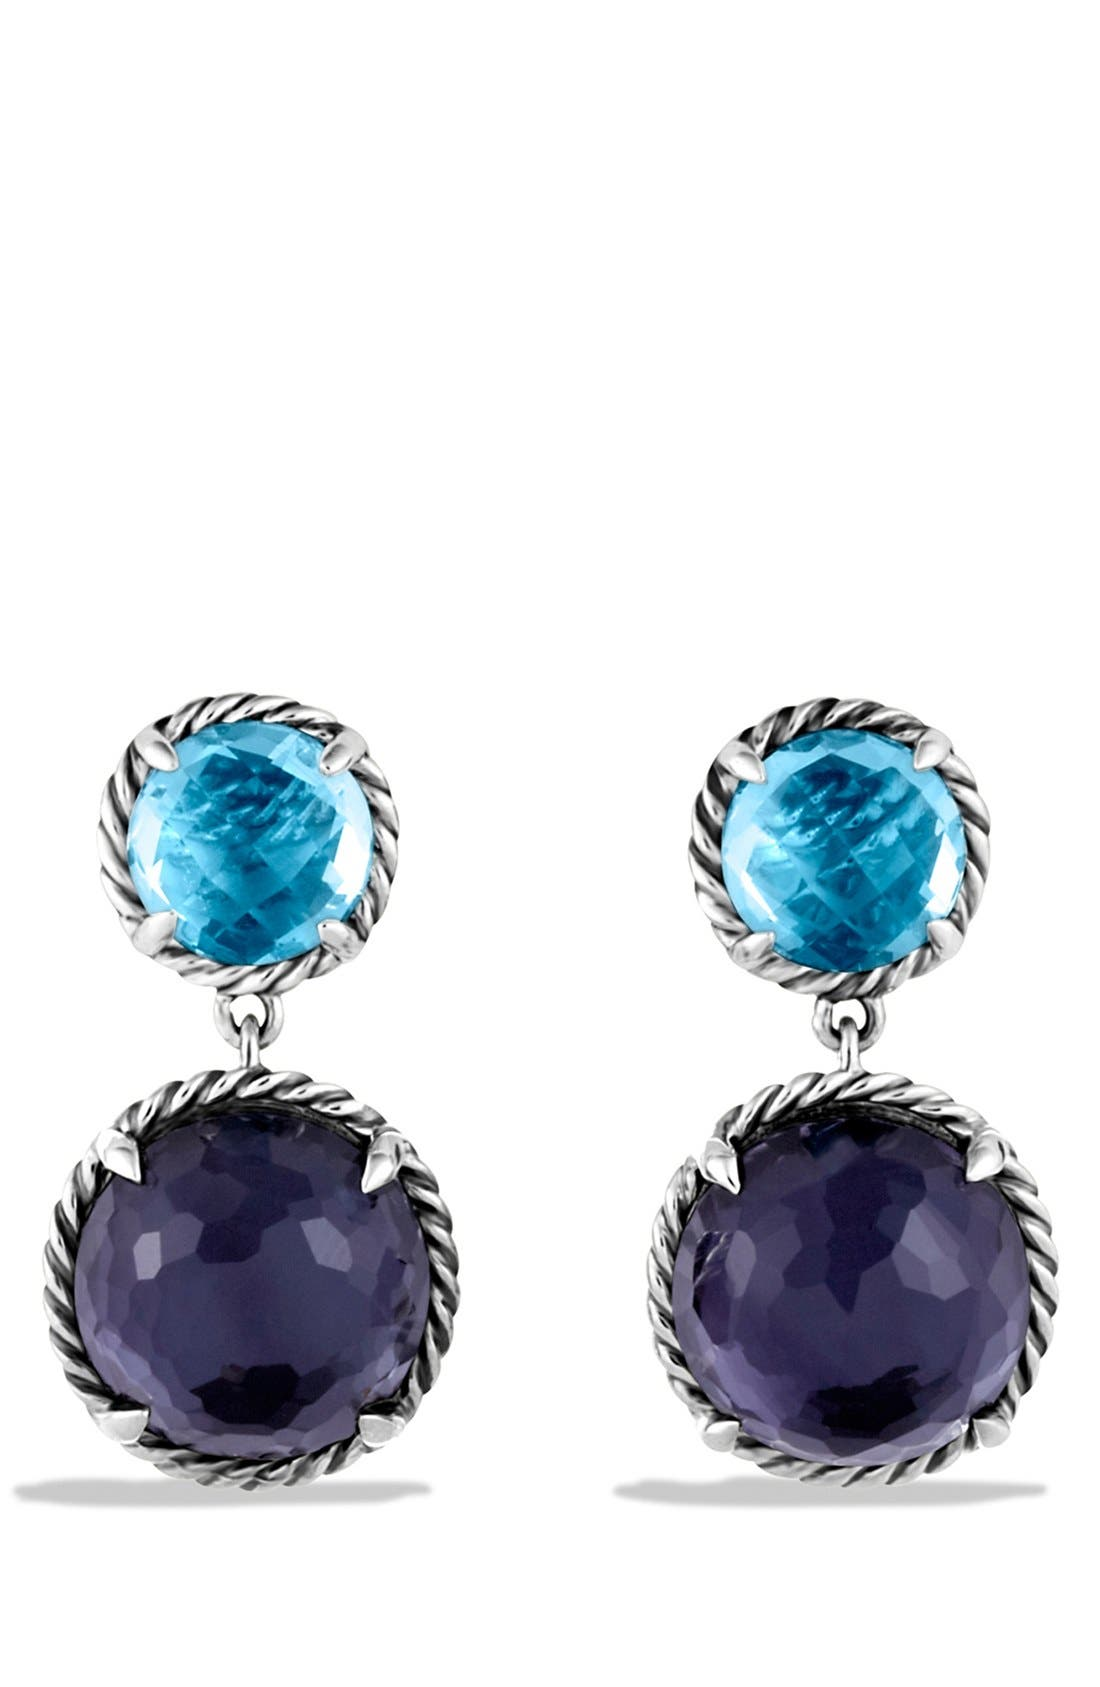 DAVID YURMAN 'Châtelaine' Double Drop Earrings with Black